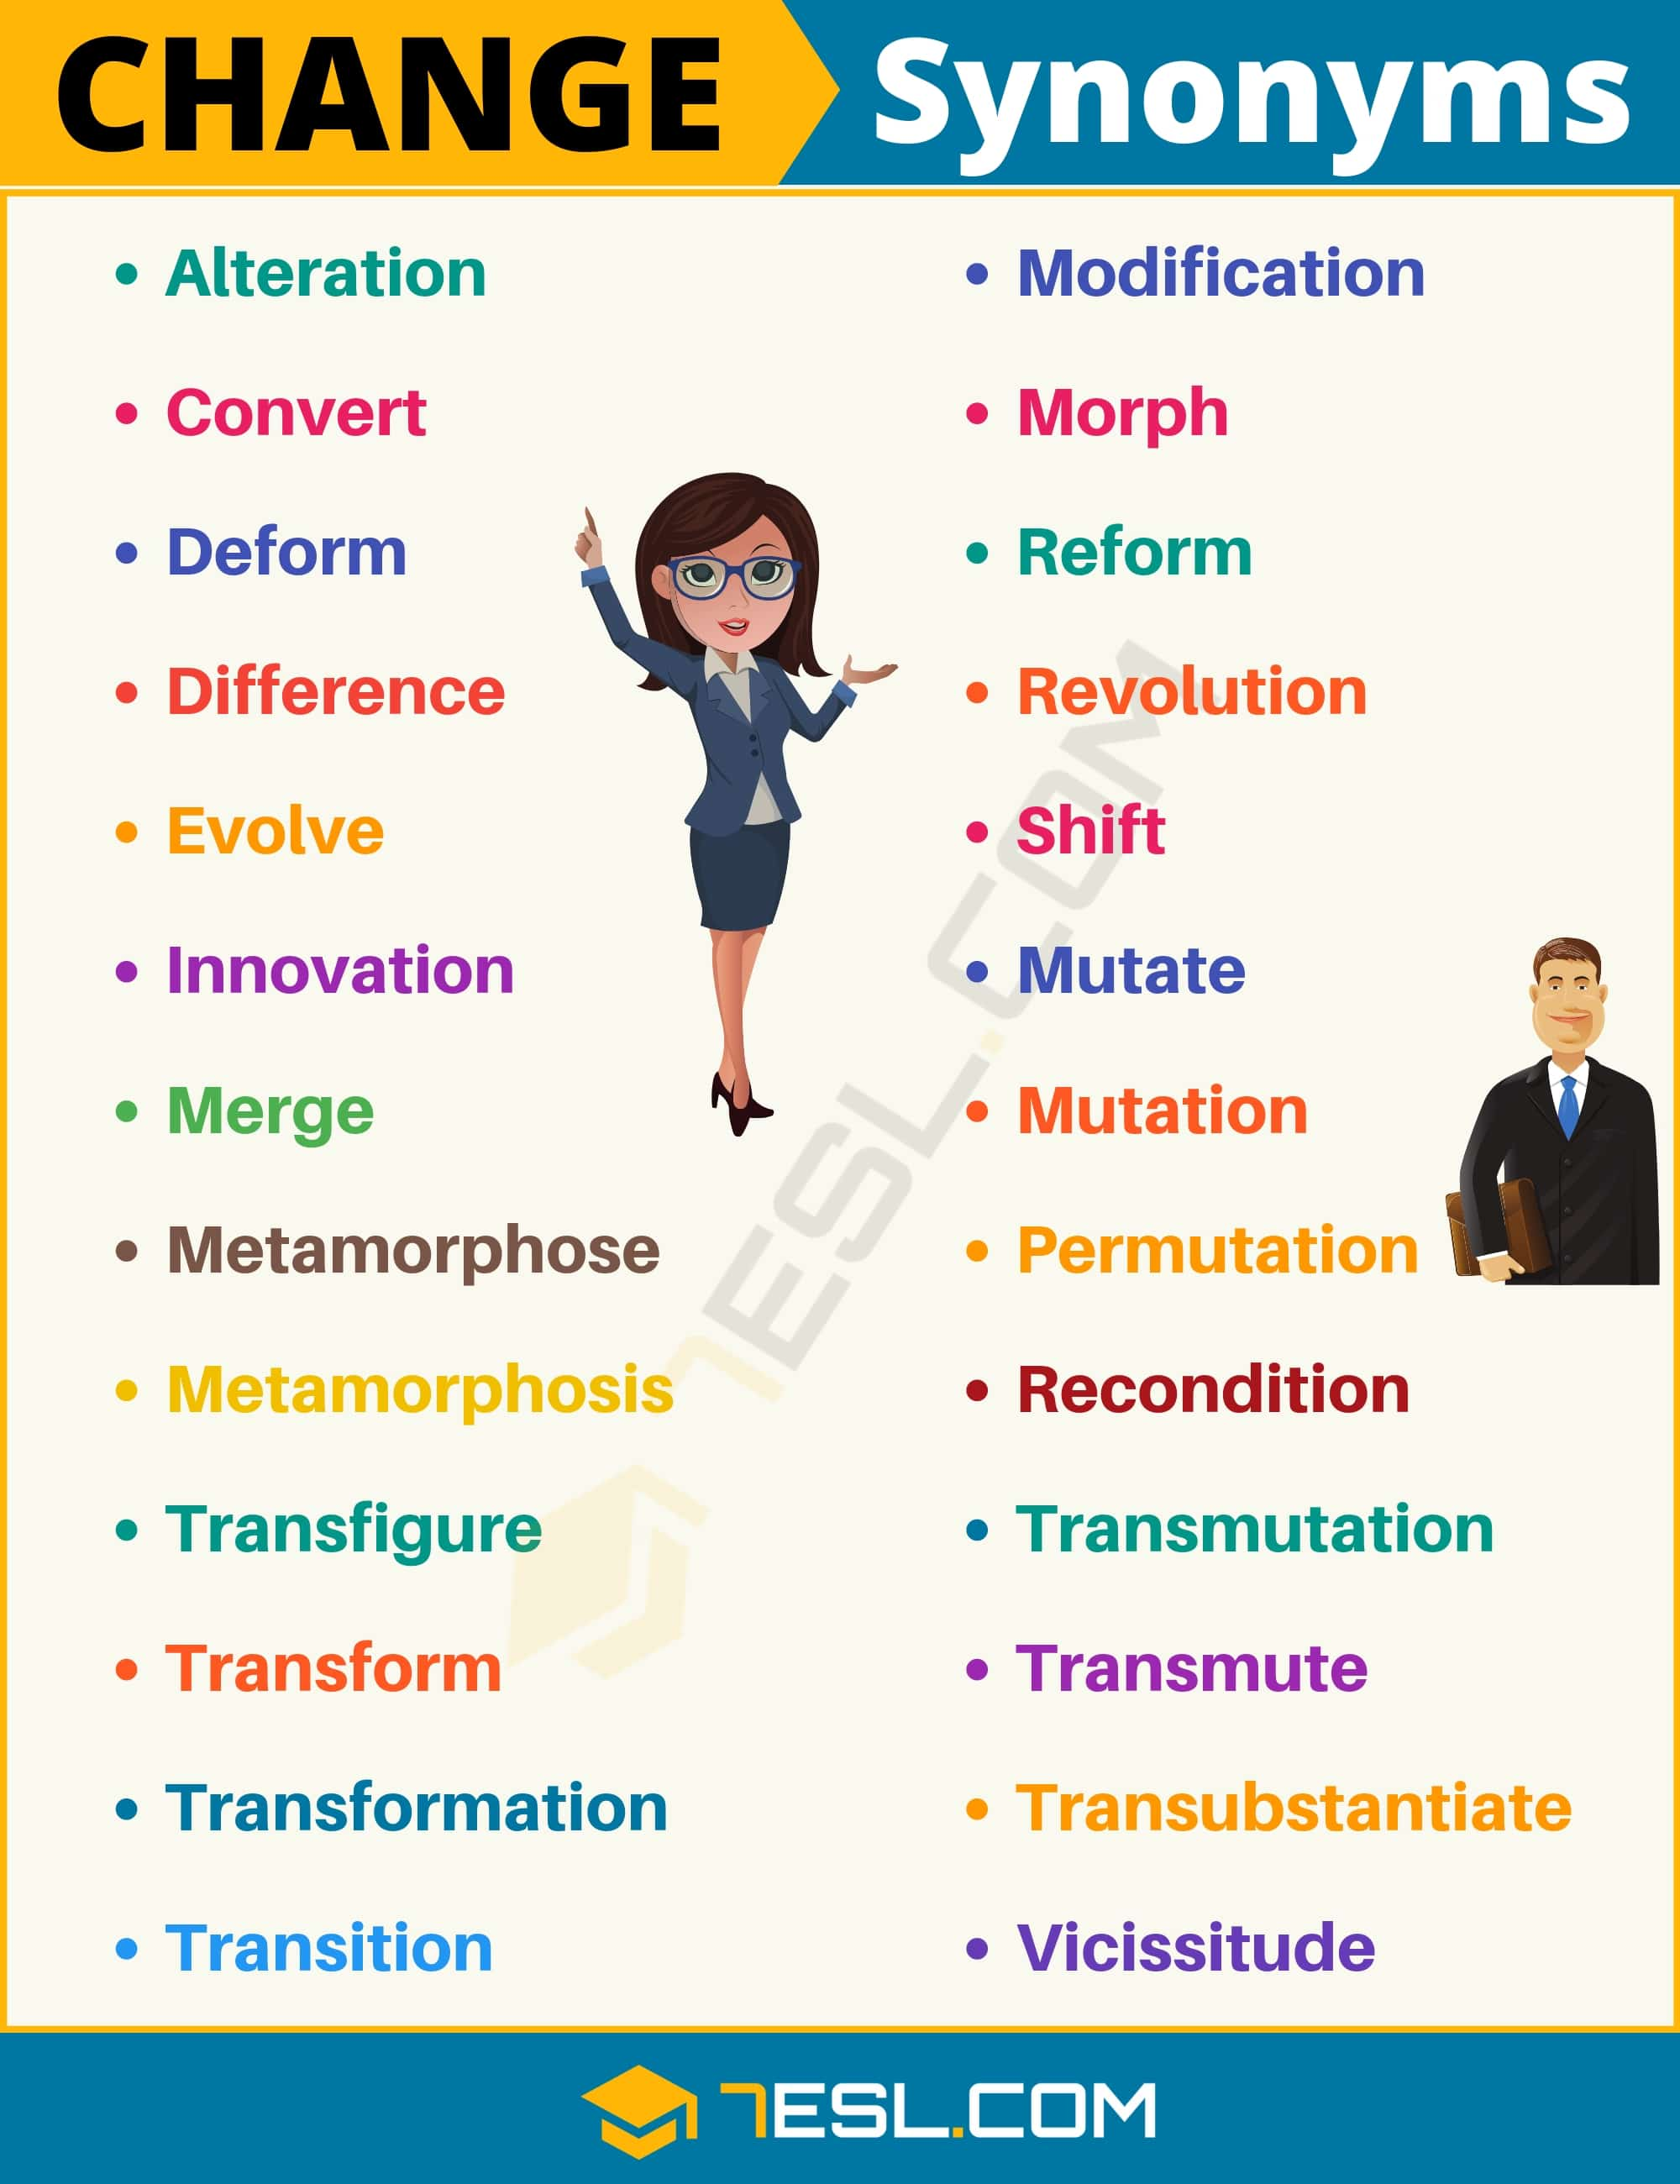 CHANGE Synonym: List of 26 Synonyms for Change with Useful Examples